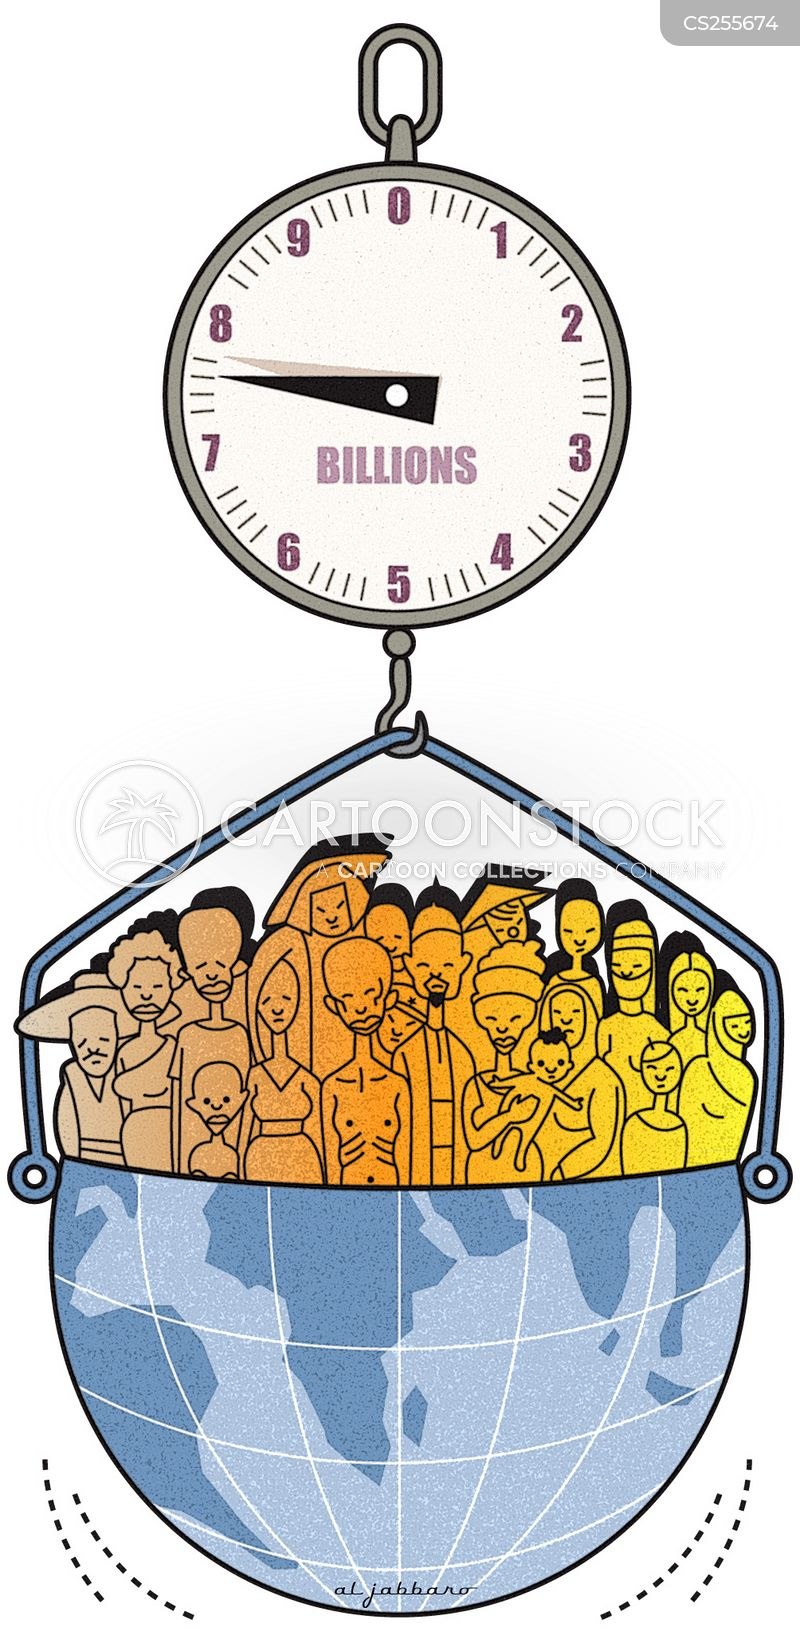 overpopulation as a social problem